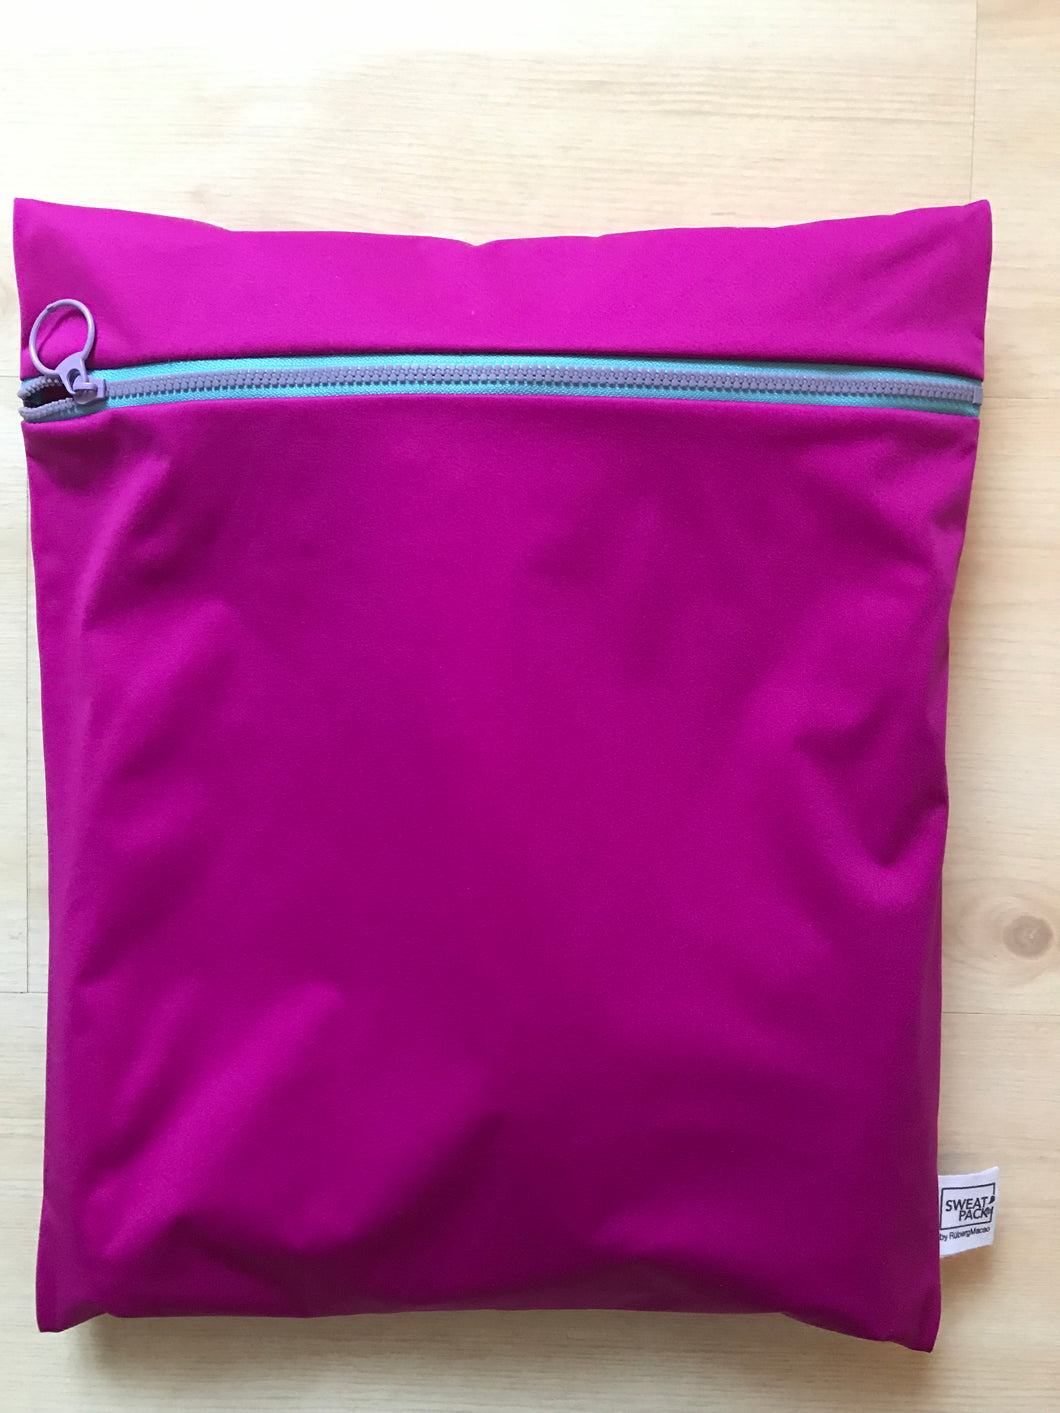 Sweat Pack Pink